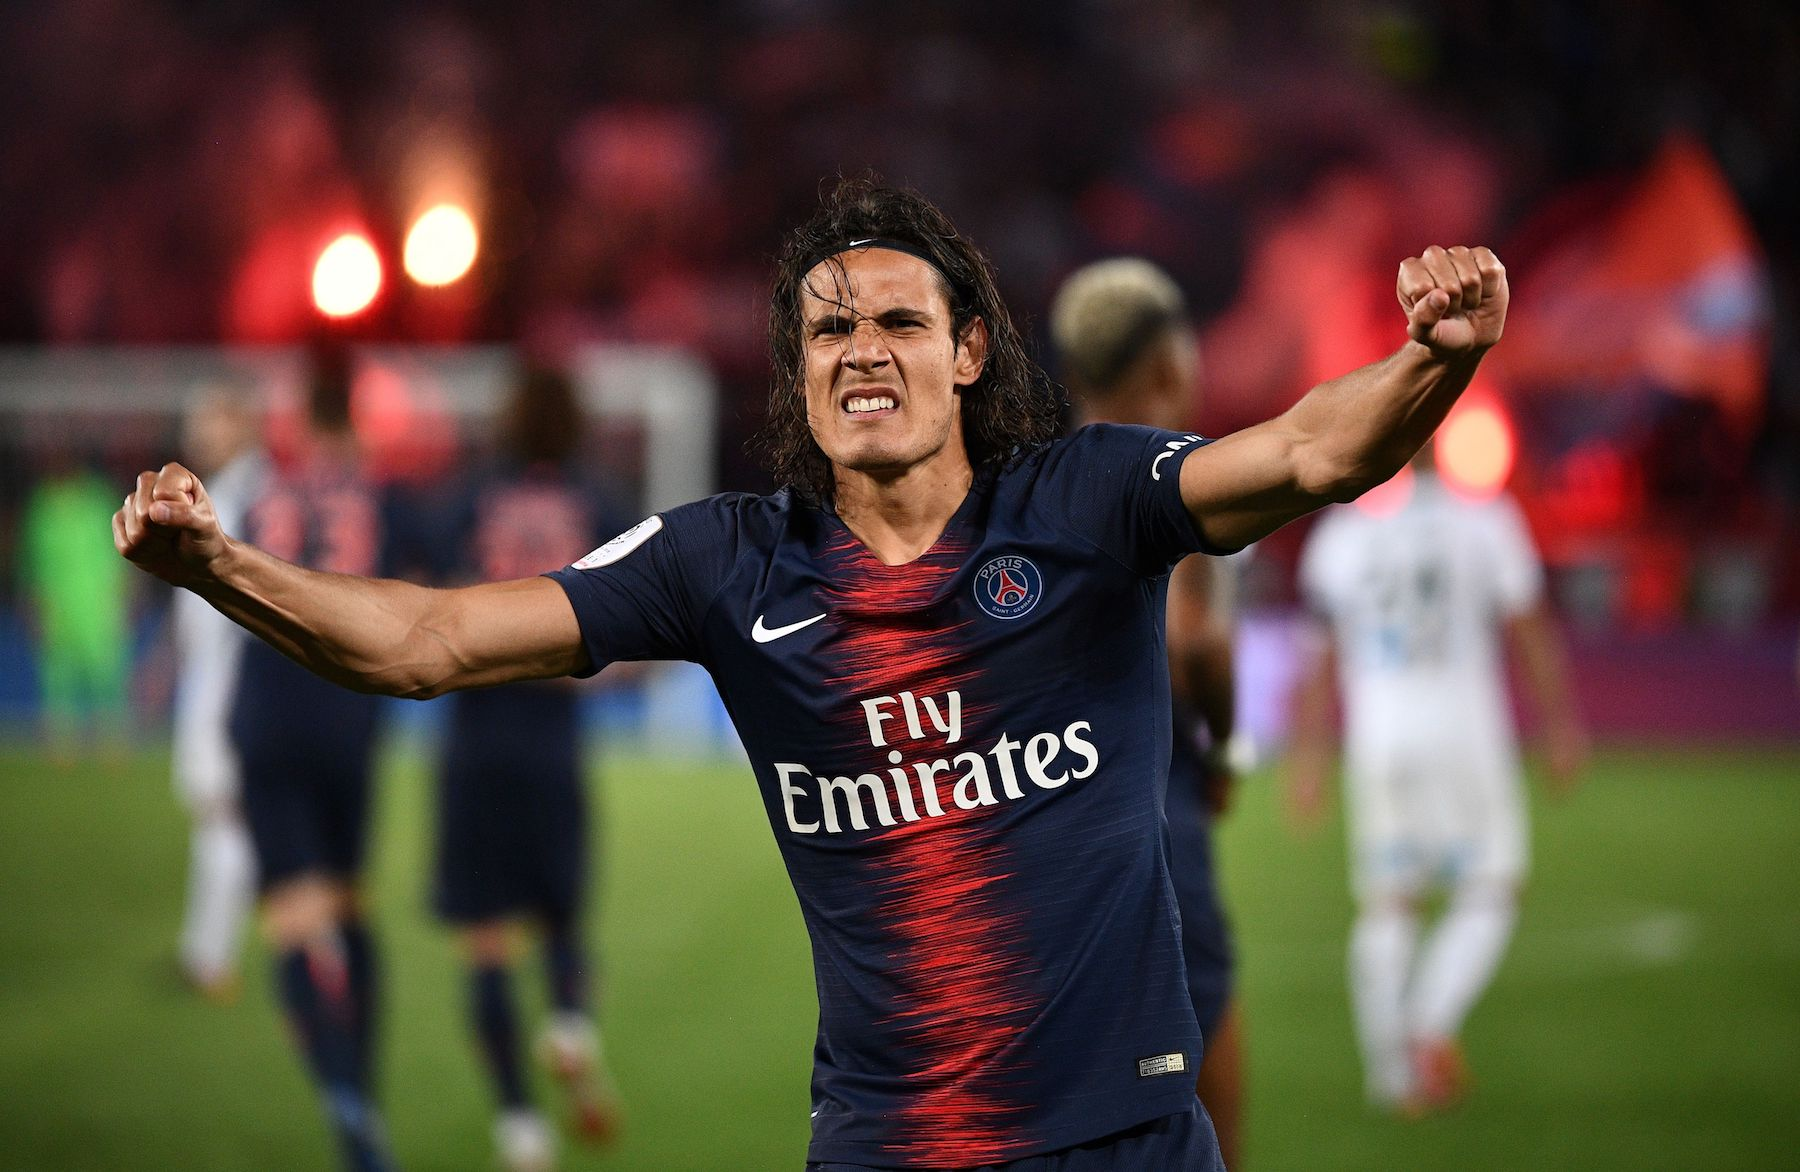 PSG: PSG Small Talk Podcast: PSG Shut Out ASSE + Liverpool